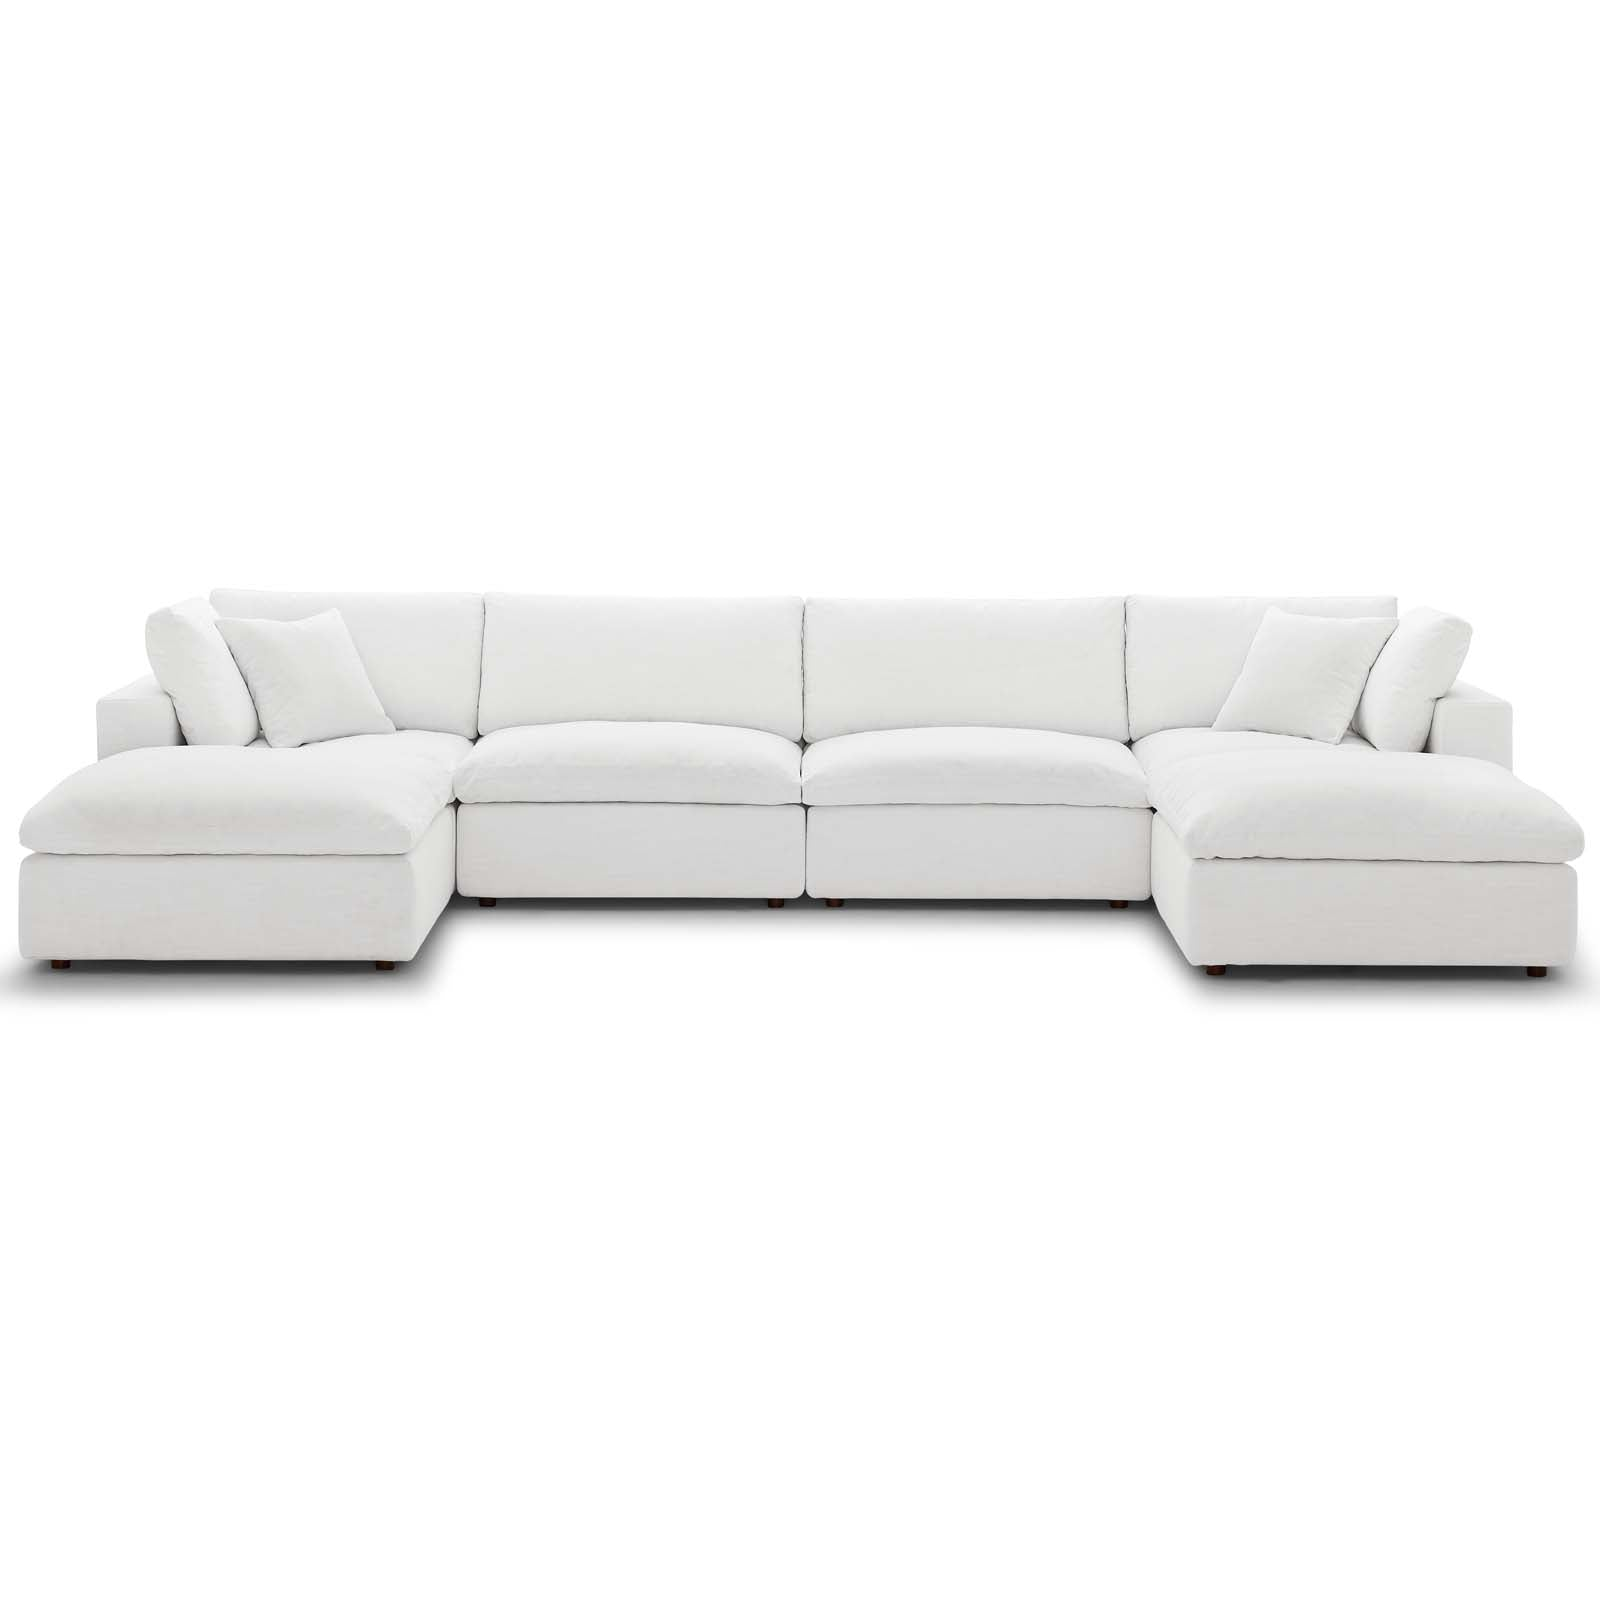 Modway EEI-3362-WHI Commix Down Filled Overstuffed 6 Piece Sectional Sofa  Set